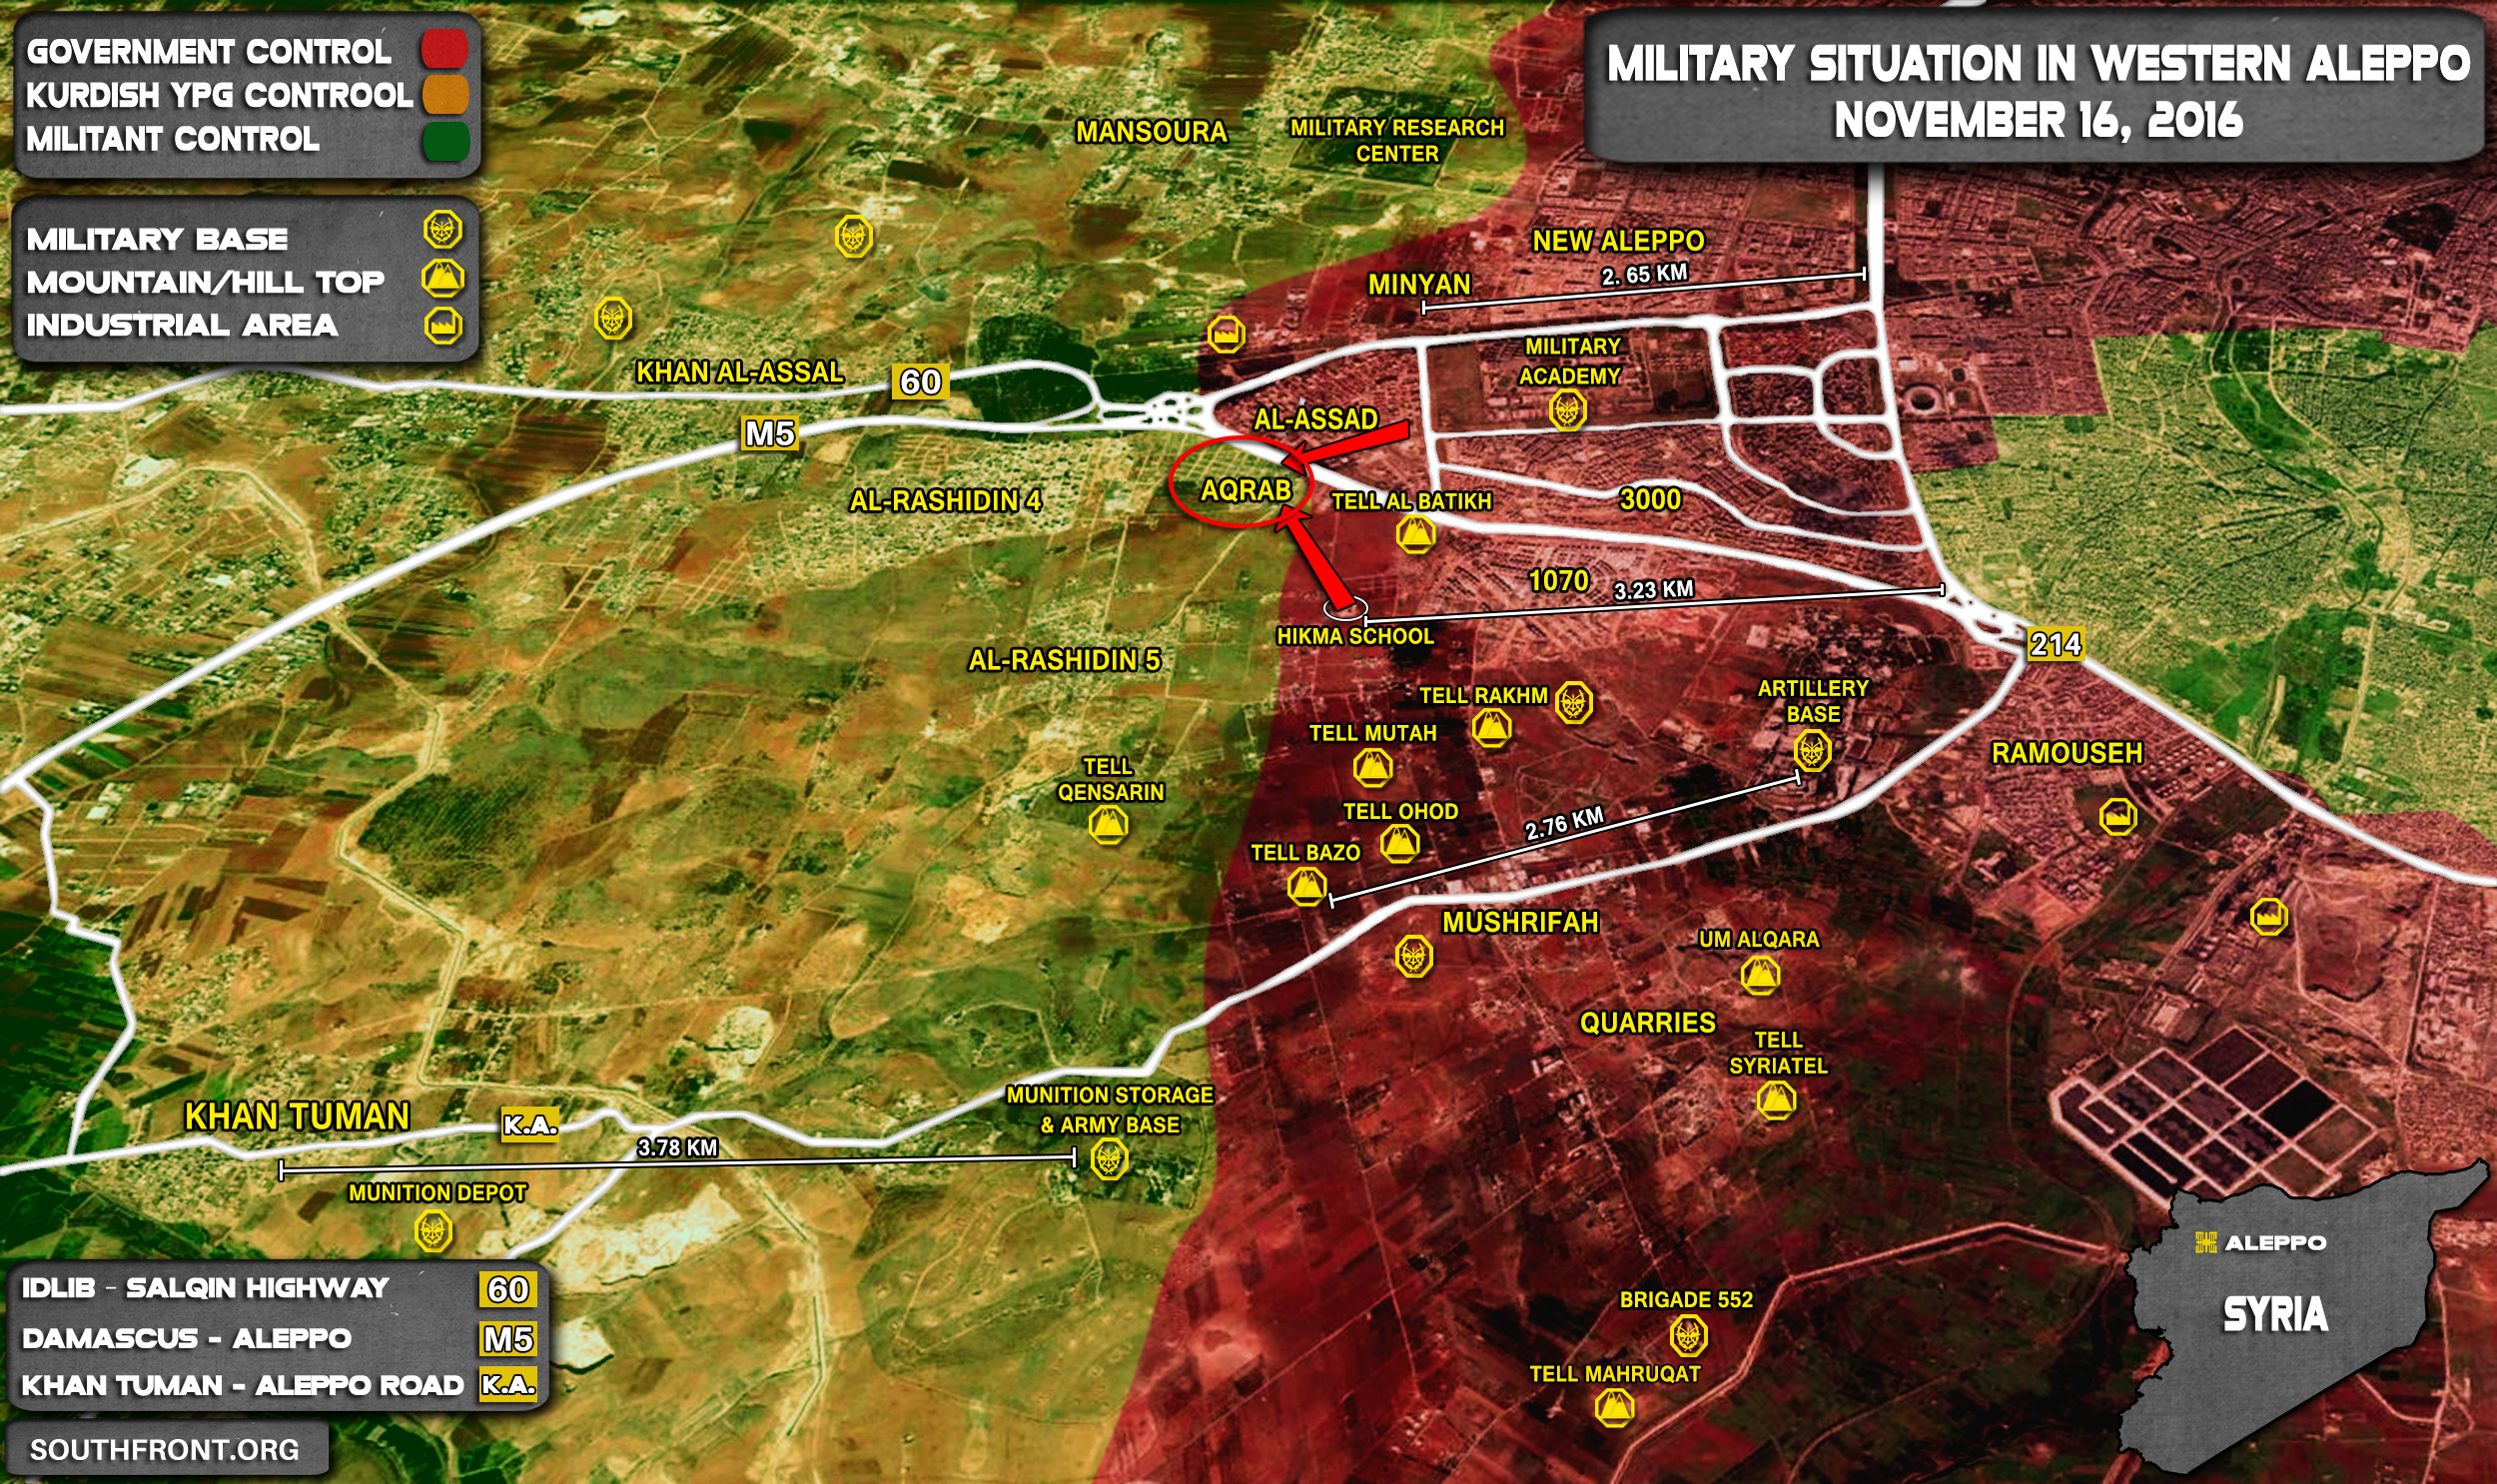 Syrian Army & Allies Liberate Aqrab Area in Western Aleppo